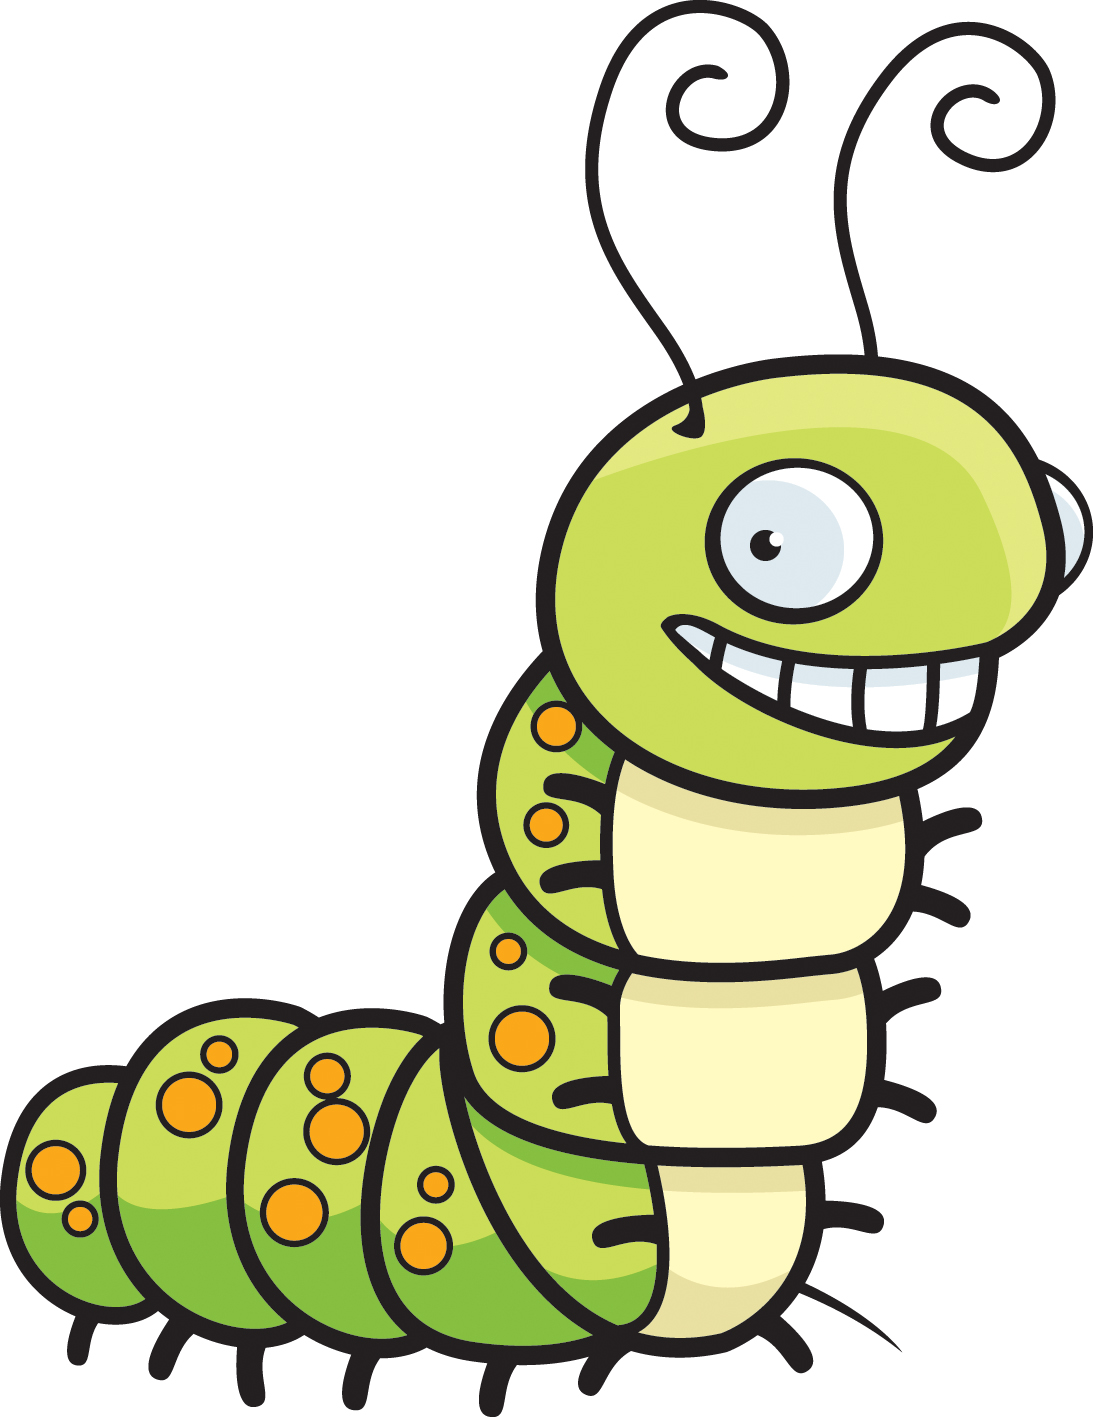 Free Caterpillar Cliparts, Download Free Clip Art, Free Clip.